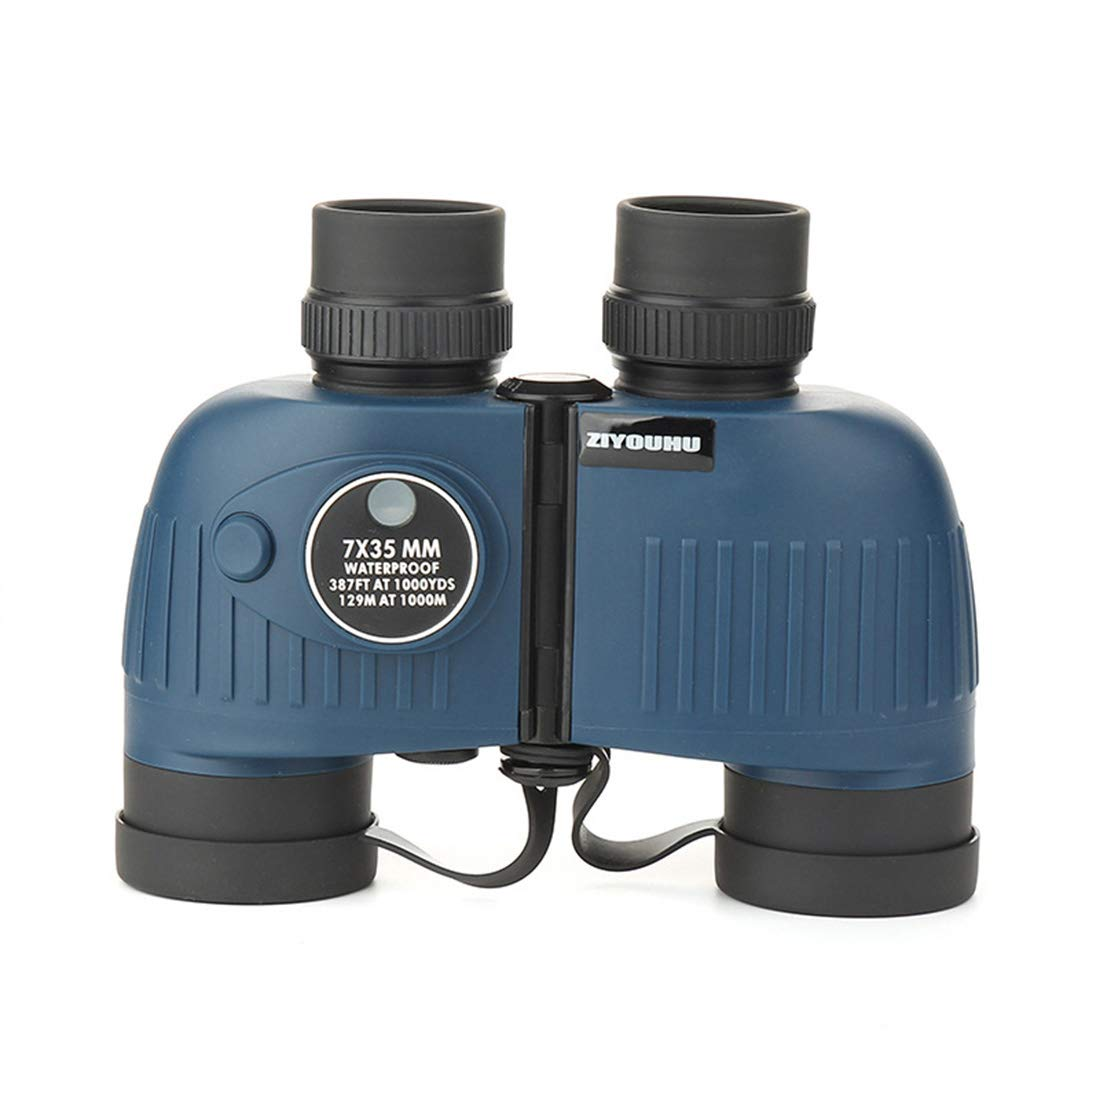 JULYFELICIA HD Binoculars 7X35 Waterproof and Shockproof With Compass Night Vision Viewing Glasses for Outdoor Use (Color : Black)